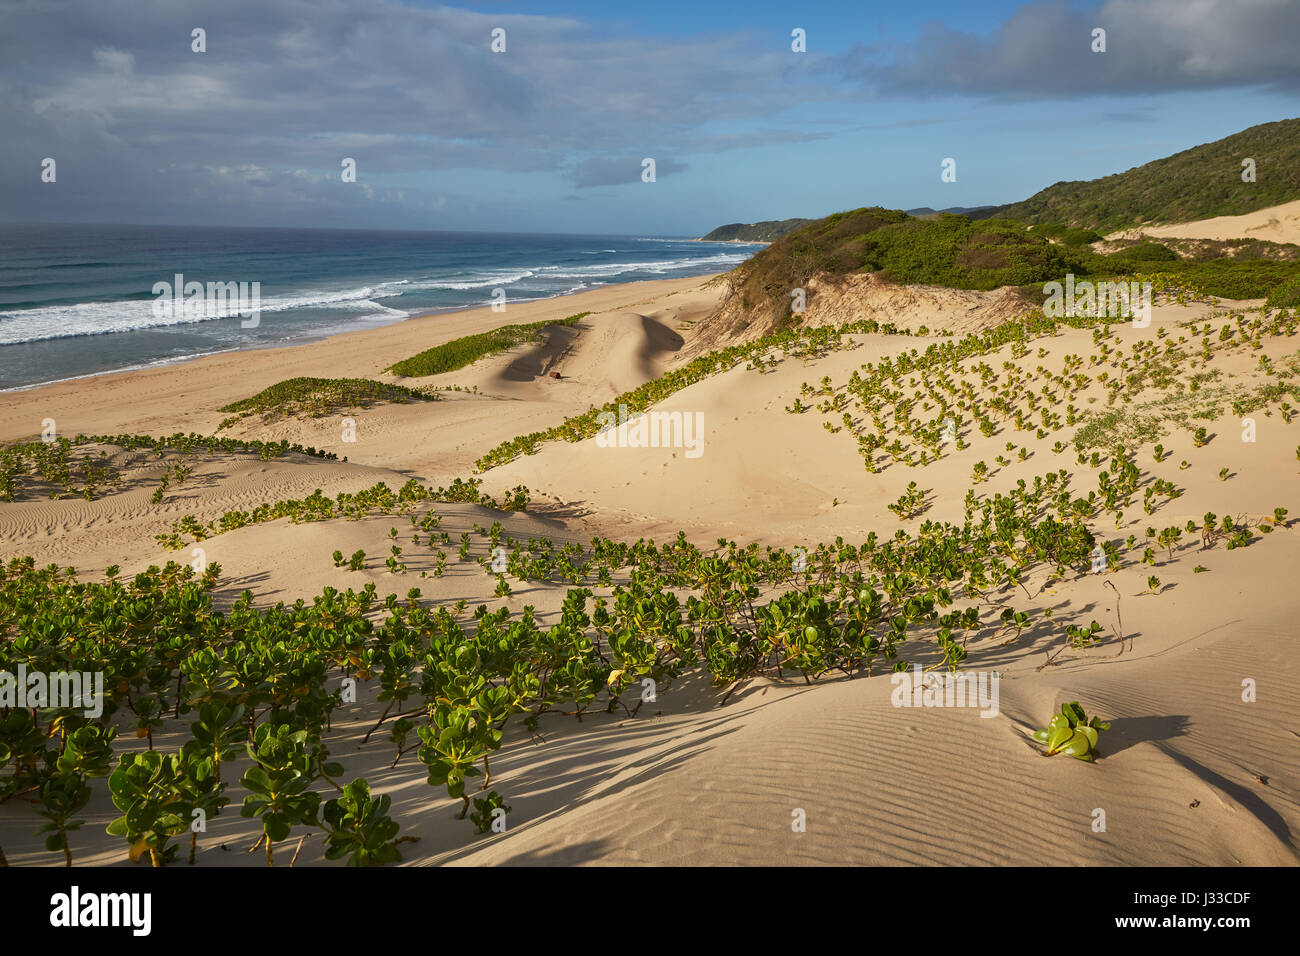 Dunes along the Indian Ocean in iSimangaliso-Wetland Park, South Africa, Africa - Stock Image